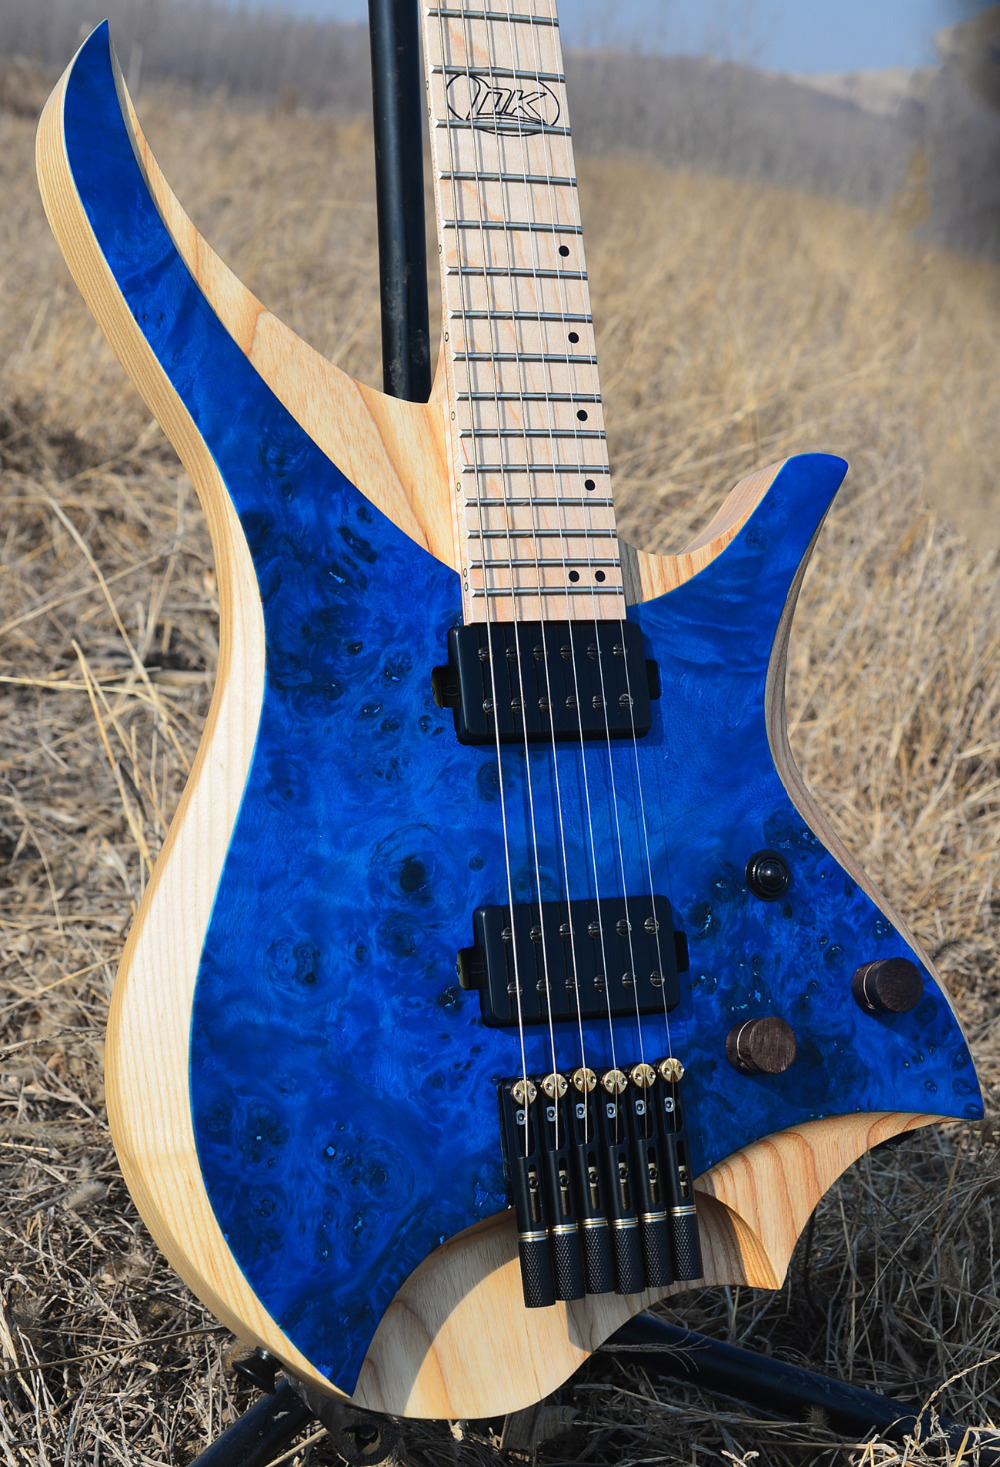 2019 NK Headless guitar Electric guitar clear spalted curly maple top Flame maple Neck black hardware Guitar free shipping